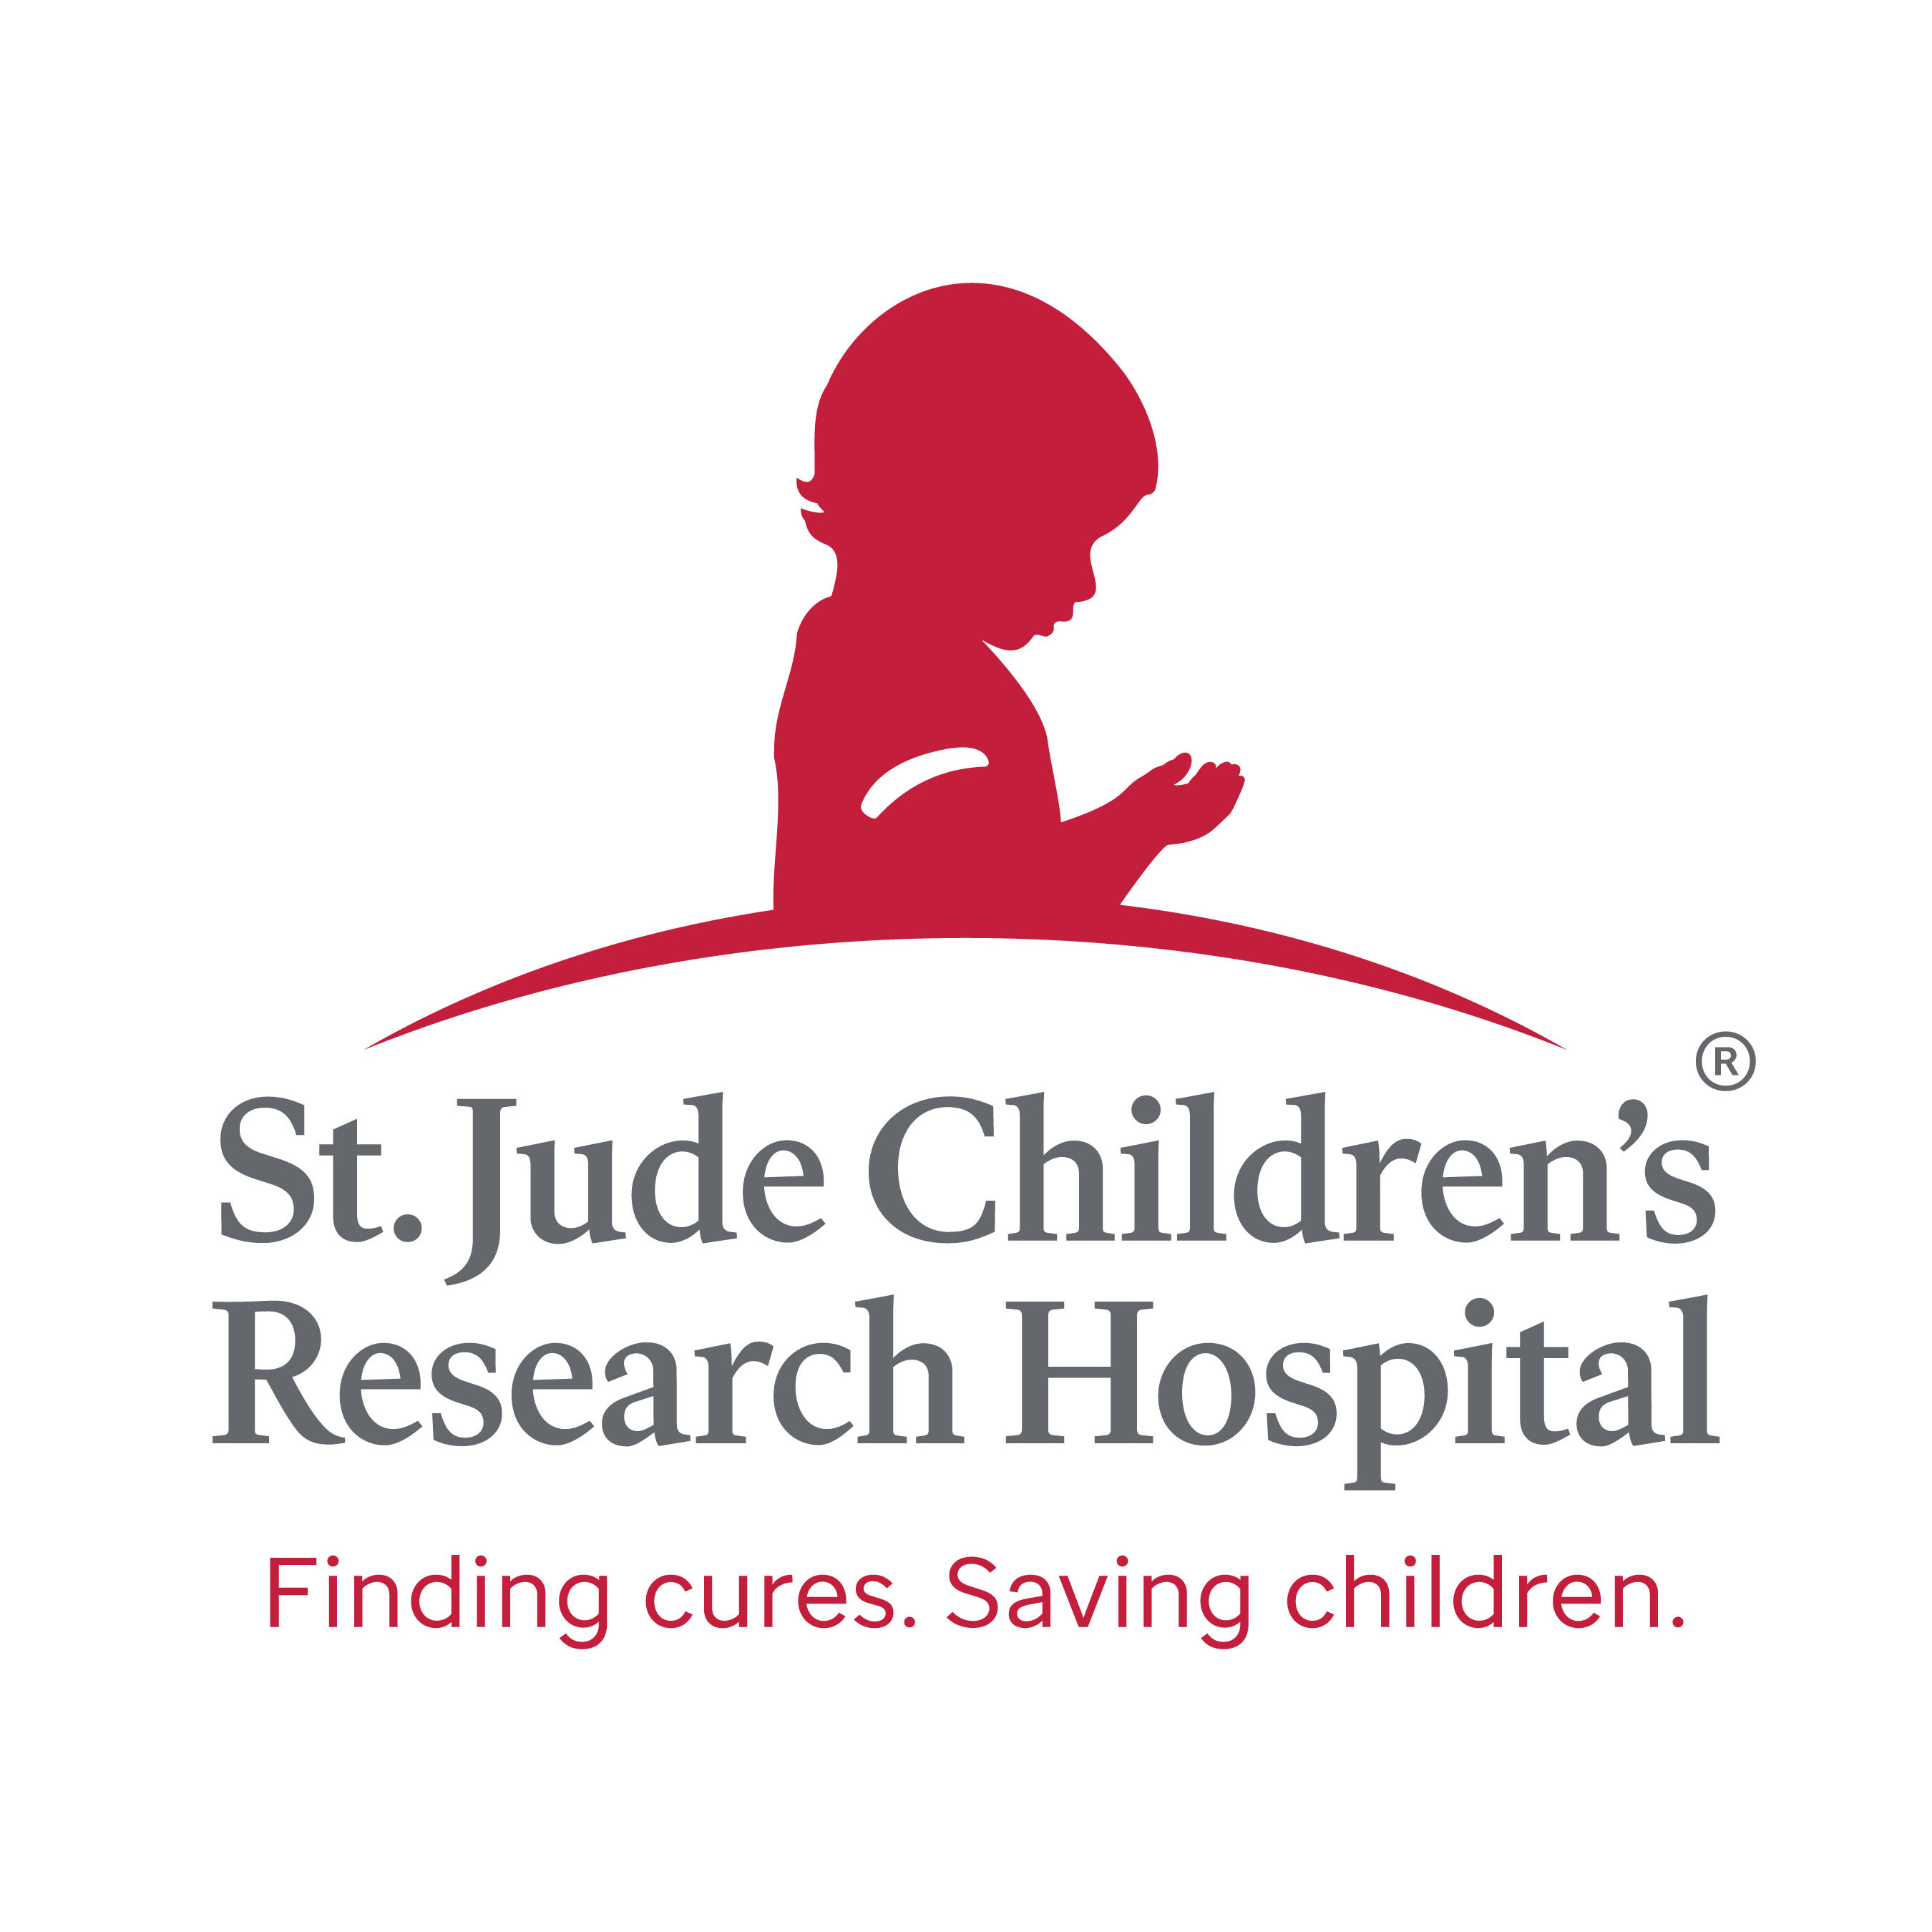 st jude cancer research